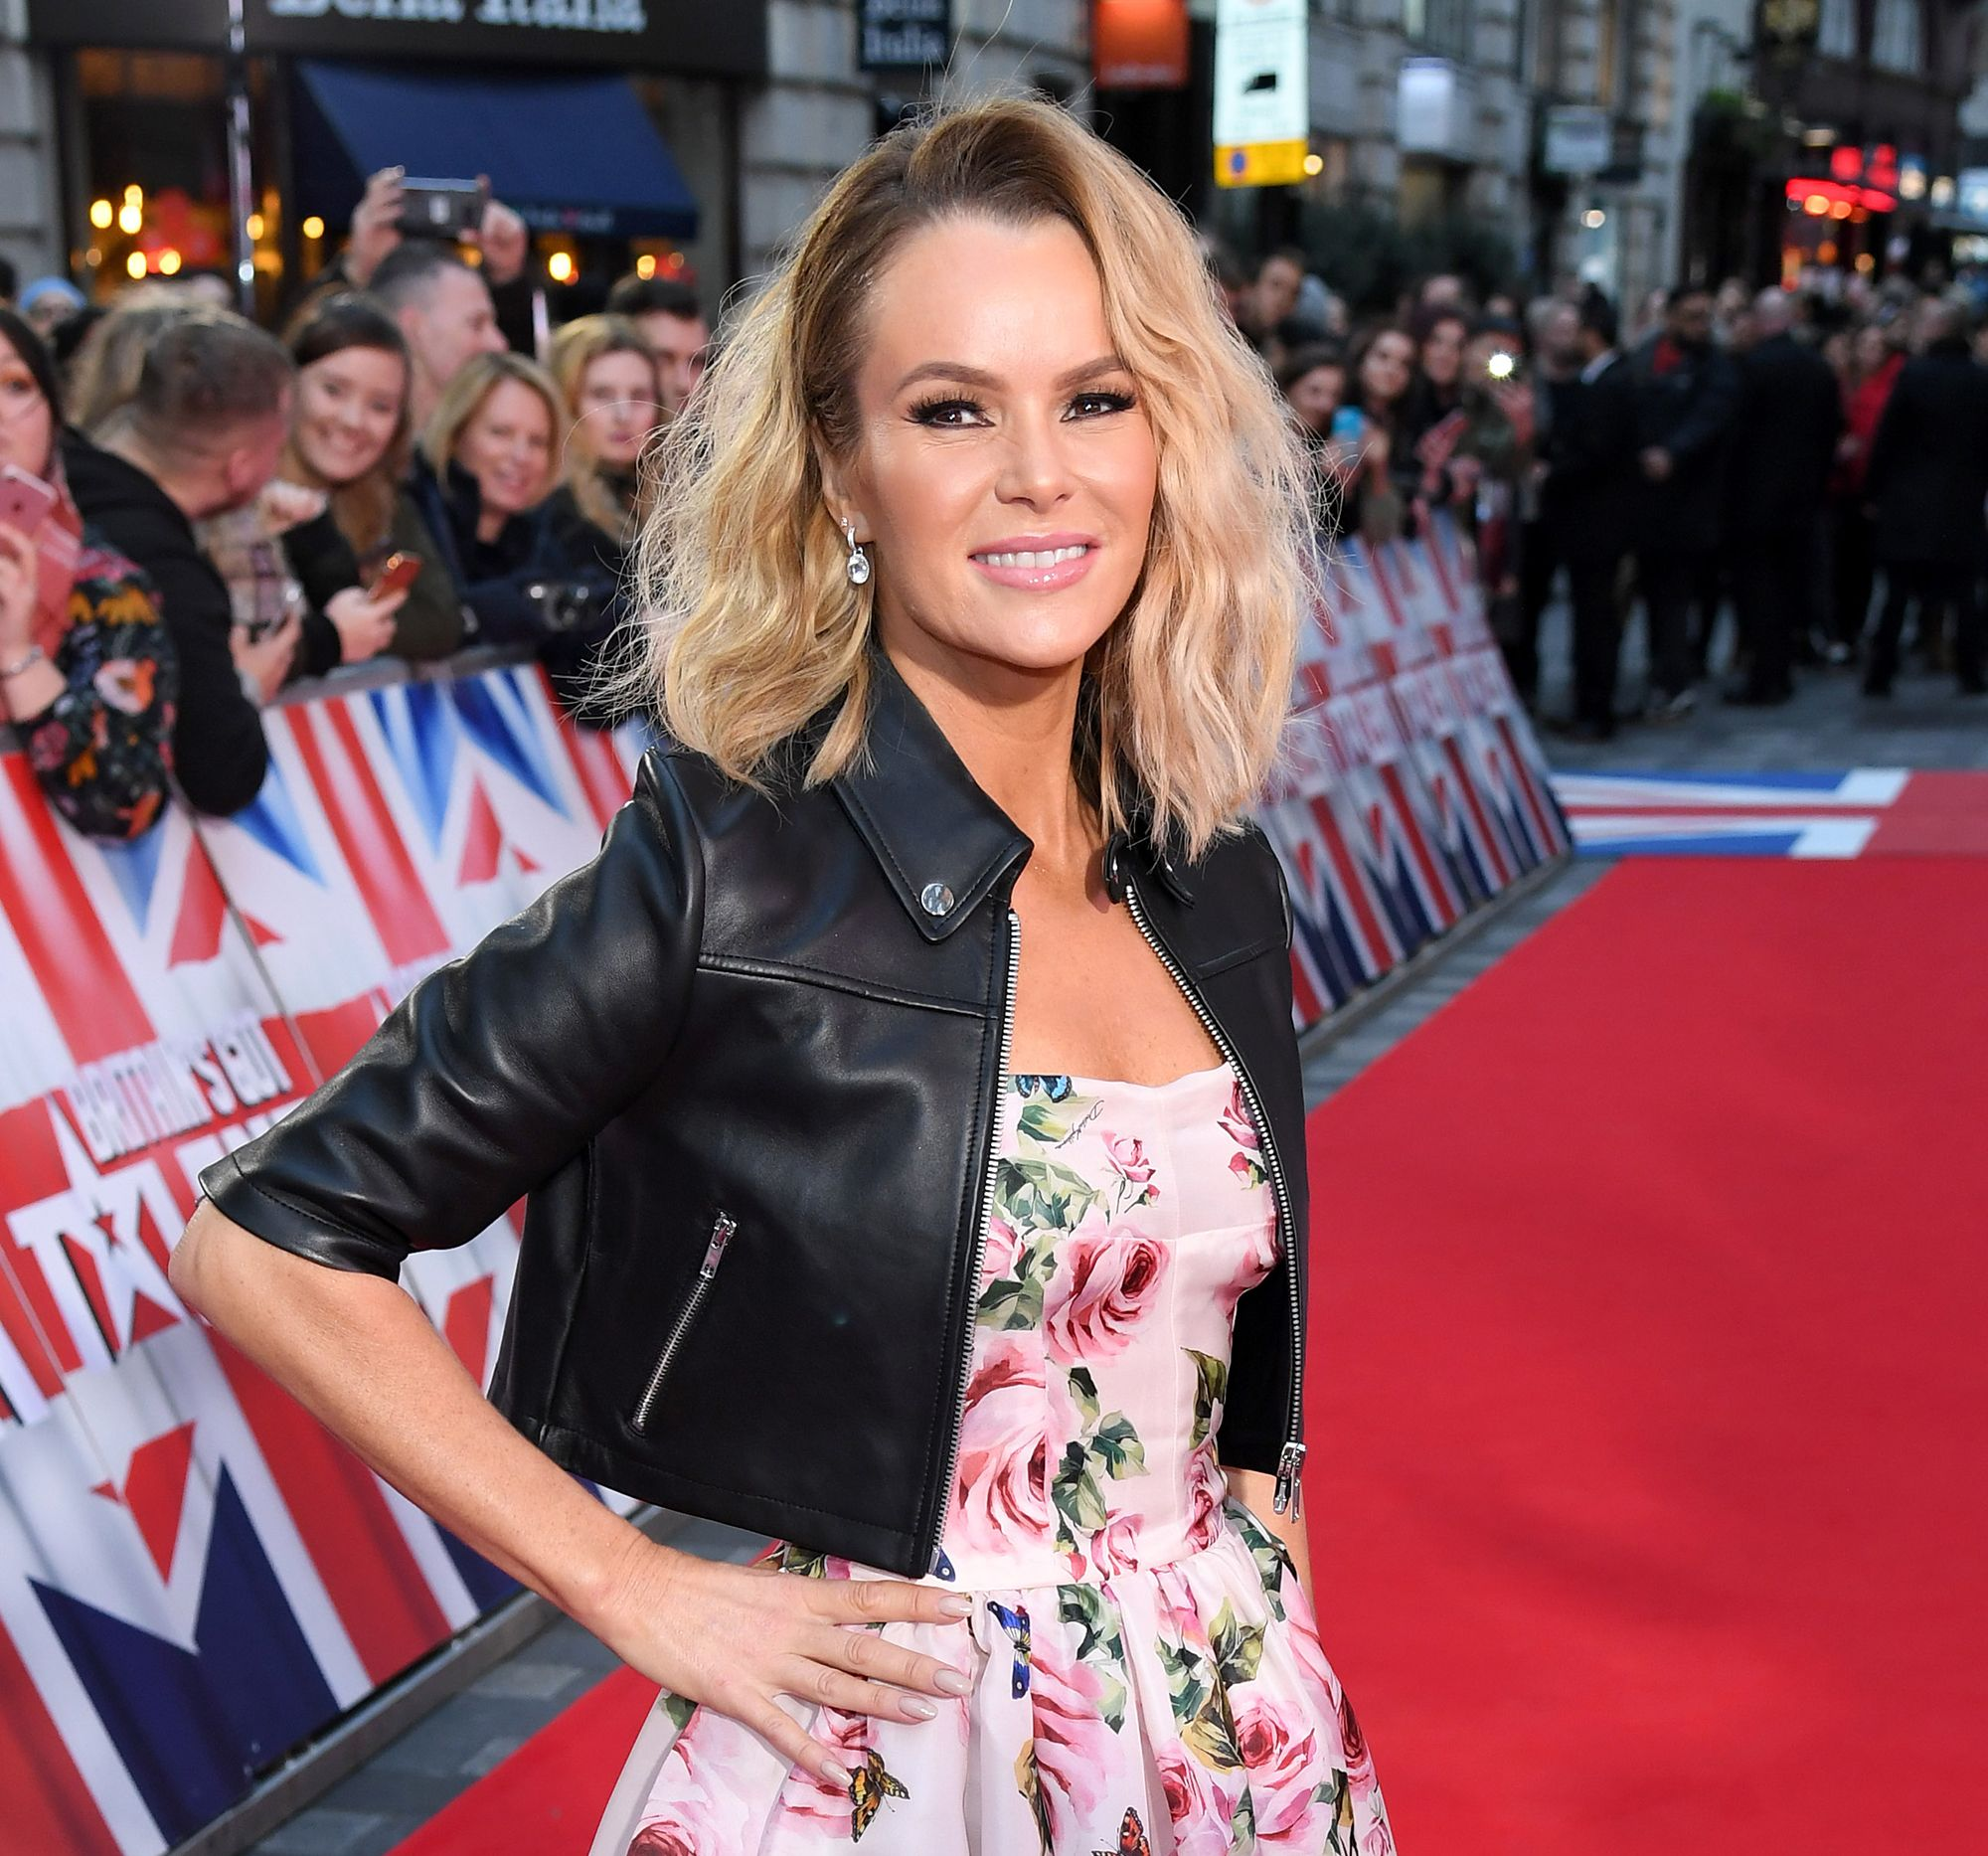 Amanda Holden Reveals How She Stays In Shape, Her Top Skincare Tip And Her New Project